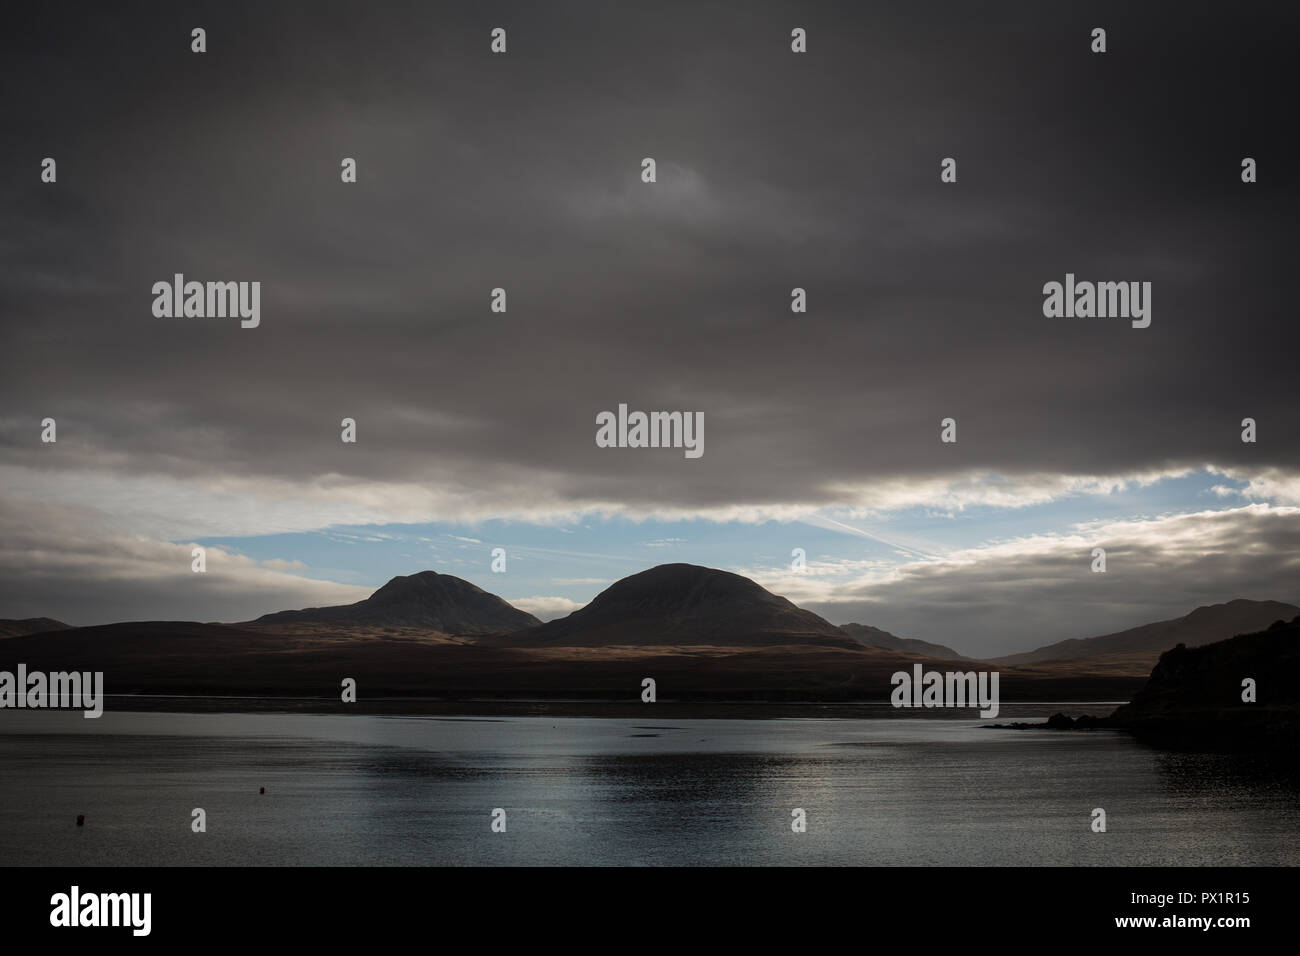 Bunnahabhain whisky distillery, in Bunnahabhain, Scotland, on 18 October 2018. - Stock Image